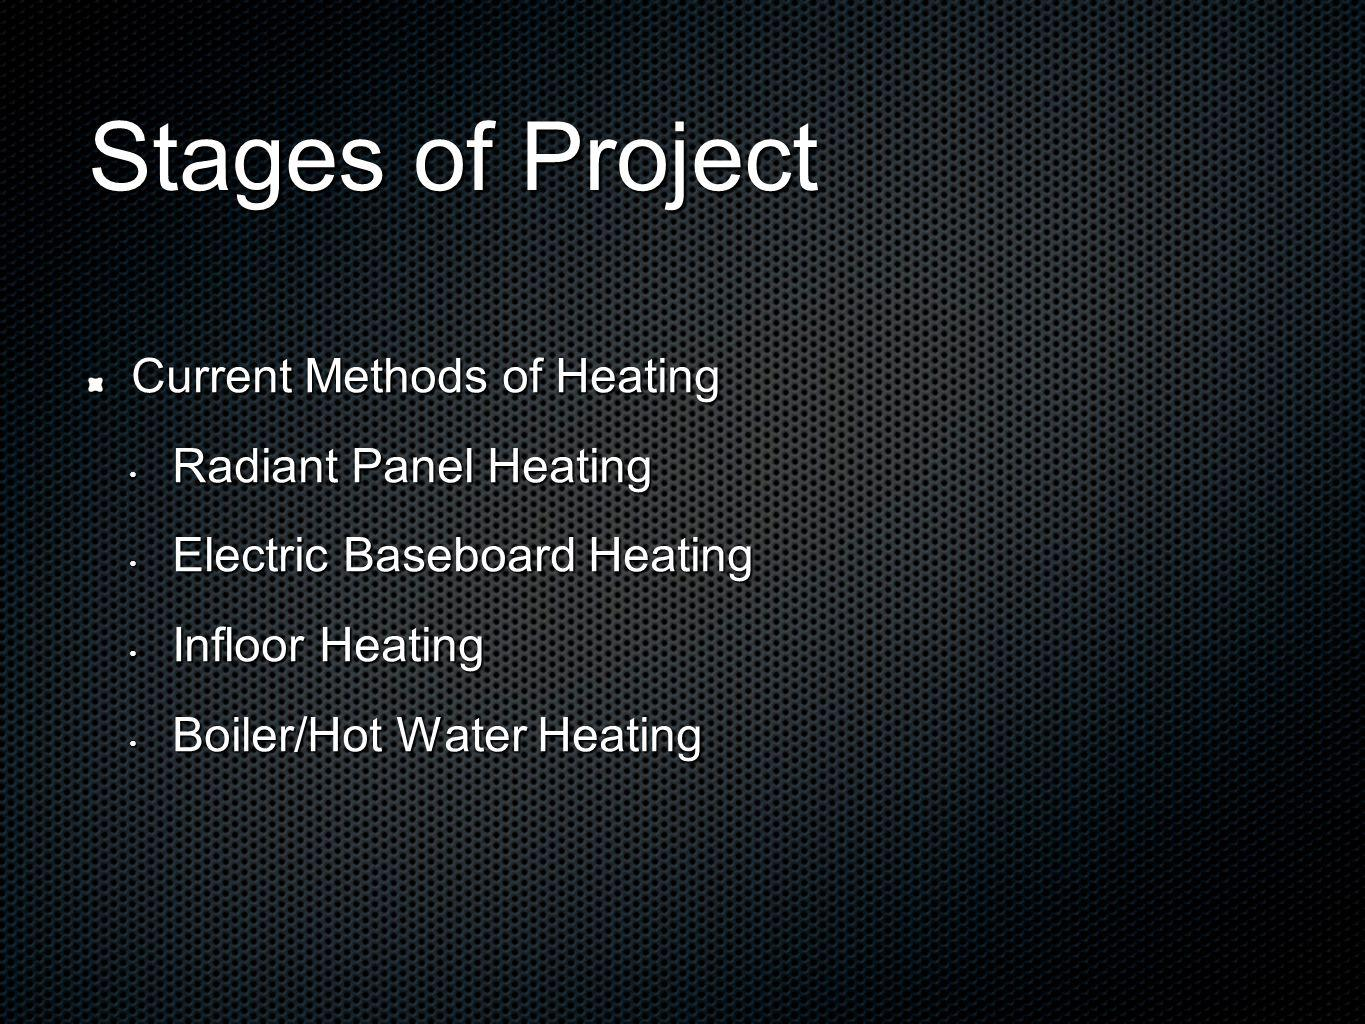 Stages of Project Current Methods of Heating Radiant Panel Heating Radiant Panel Heating Electric Baseboard Heating Electric Baseboard Heating Infloor Heating Infloor Heating Boiler/Hot Water Heating Boiler/Hot Water Heating